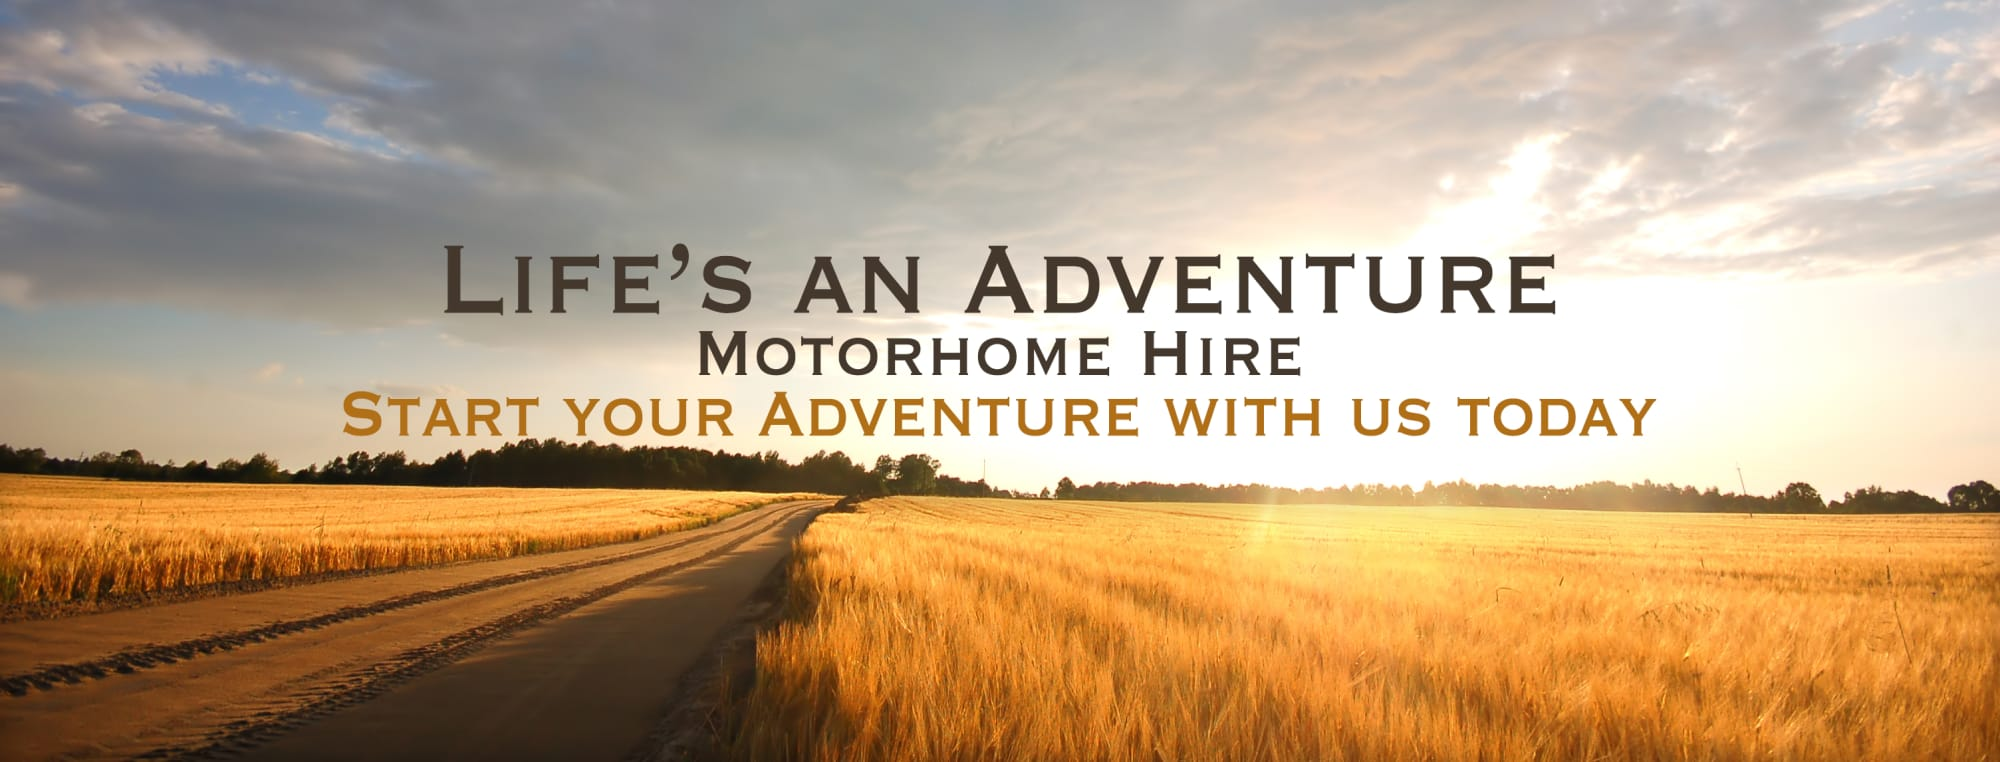 Life's An Adventure Reviews & RV Rentals | Outdoorsy